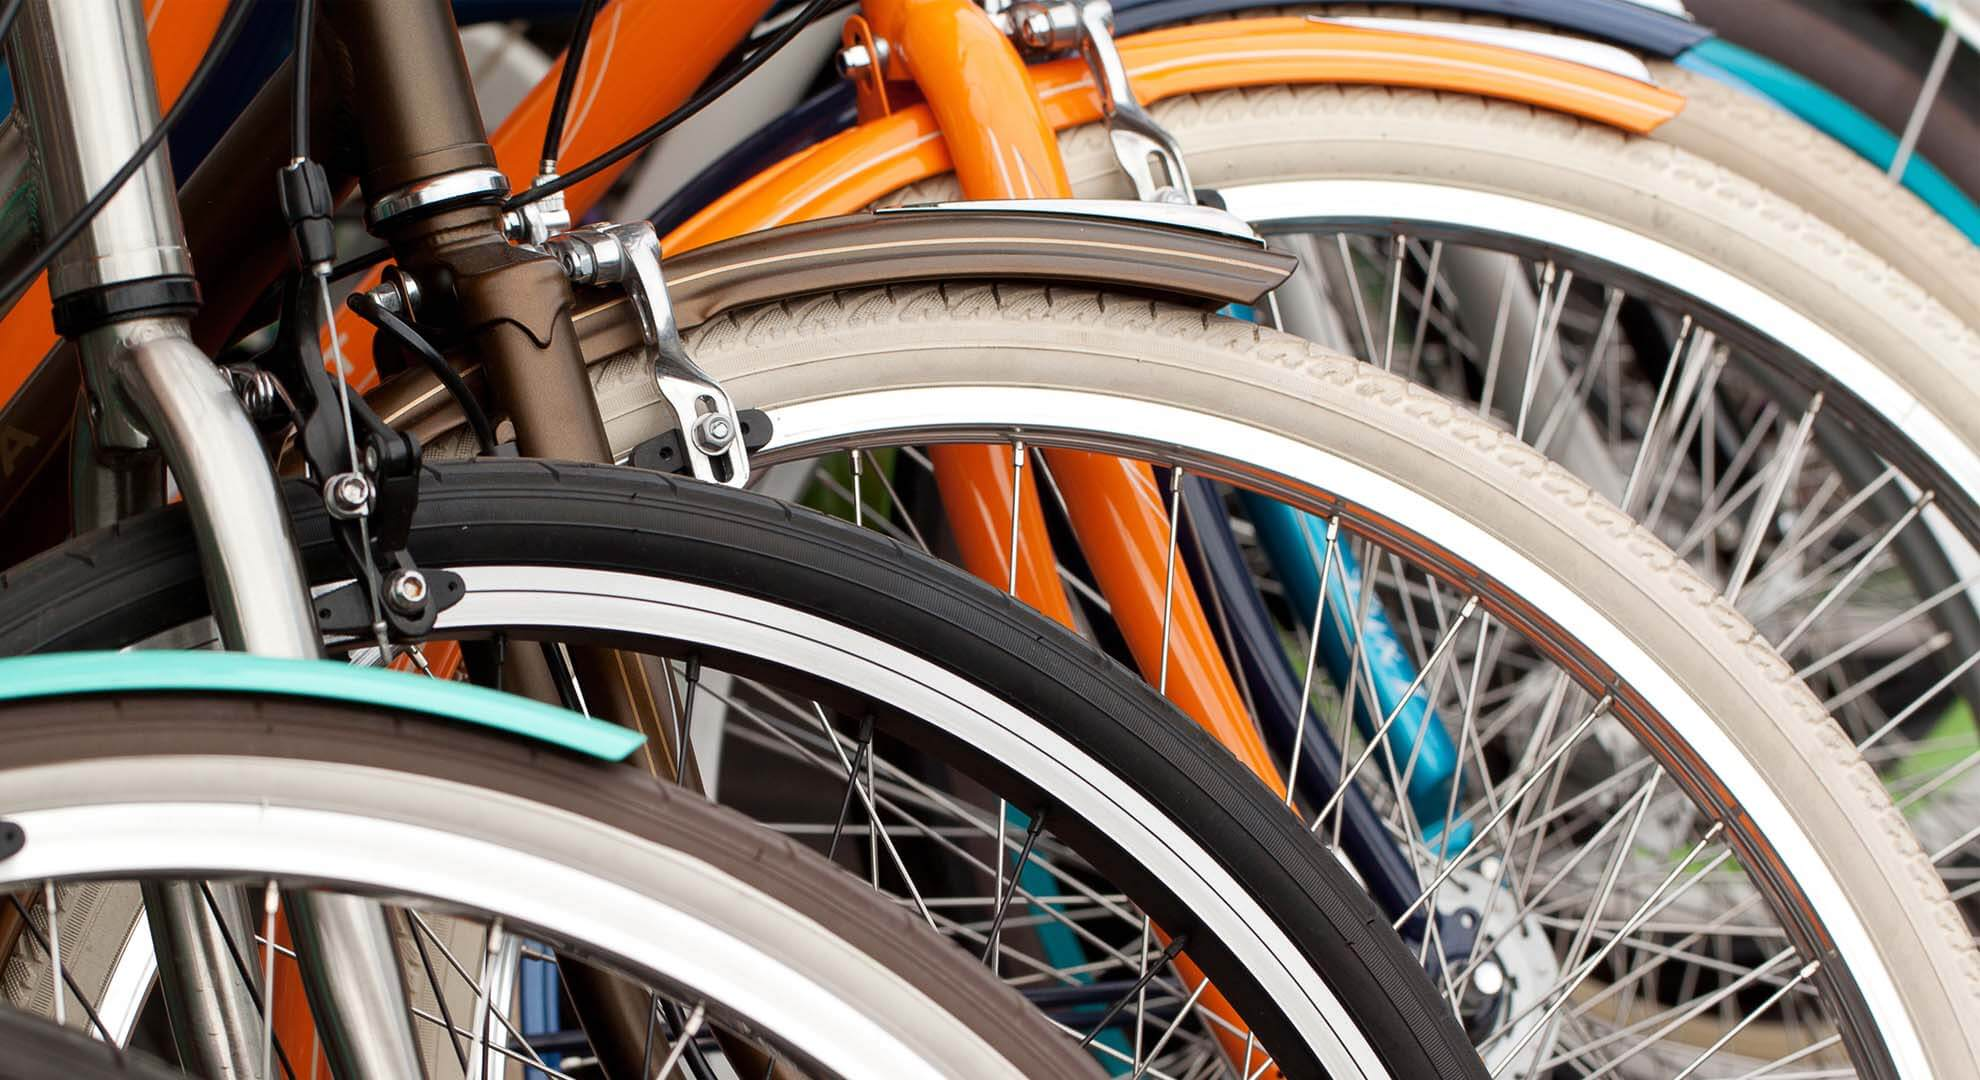 Scots double up on the climate change fight by getting on their second-hand bikes